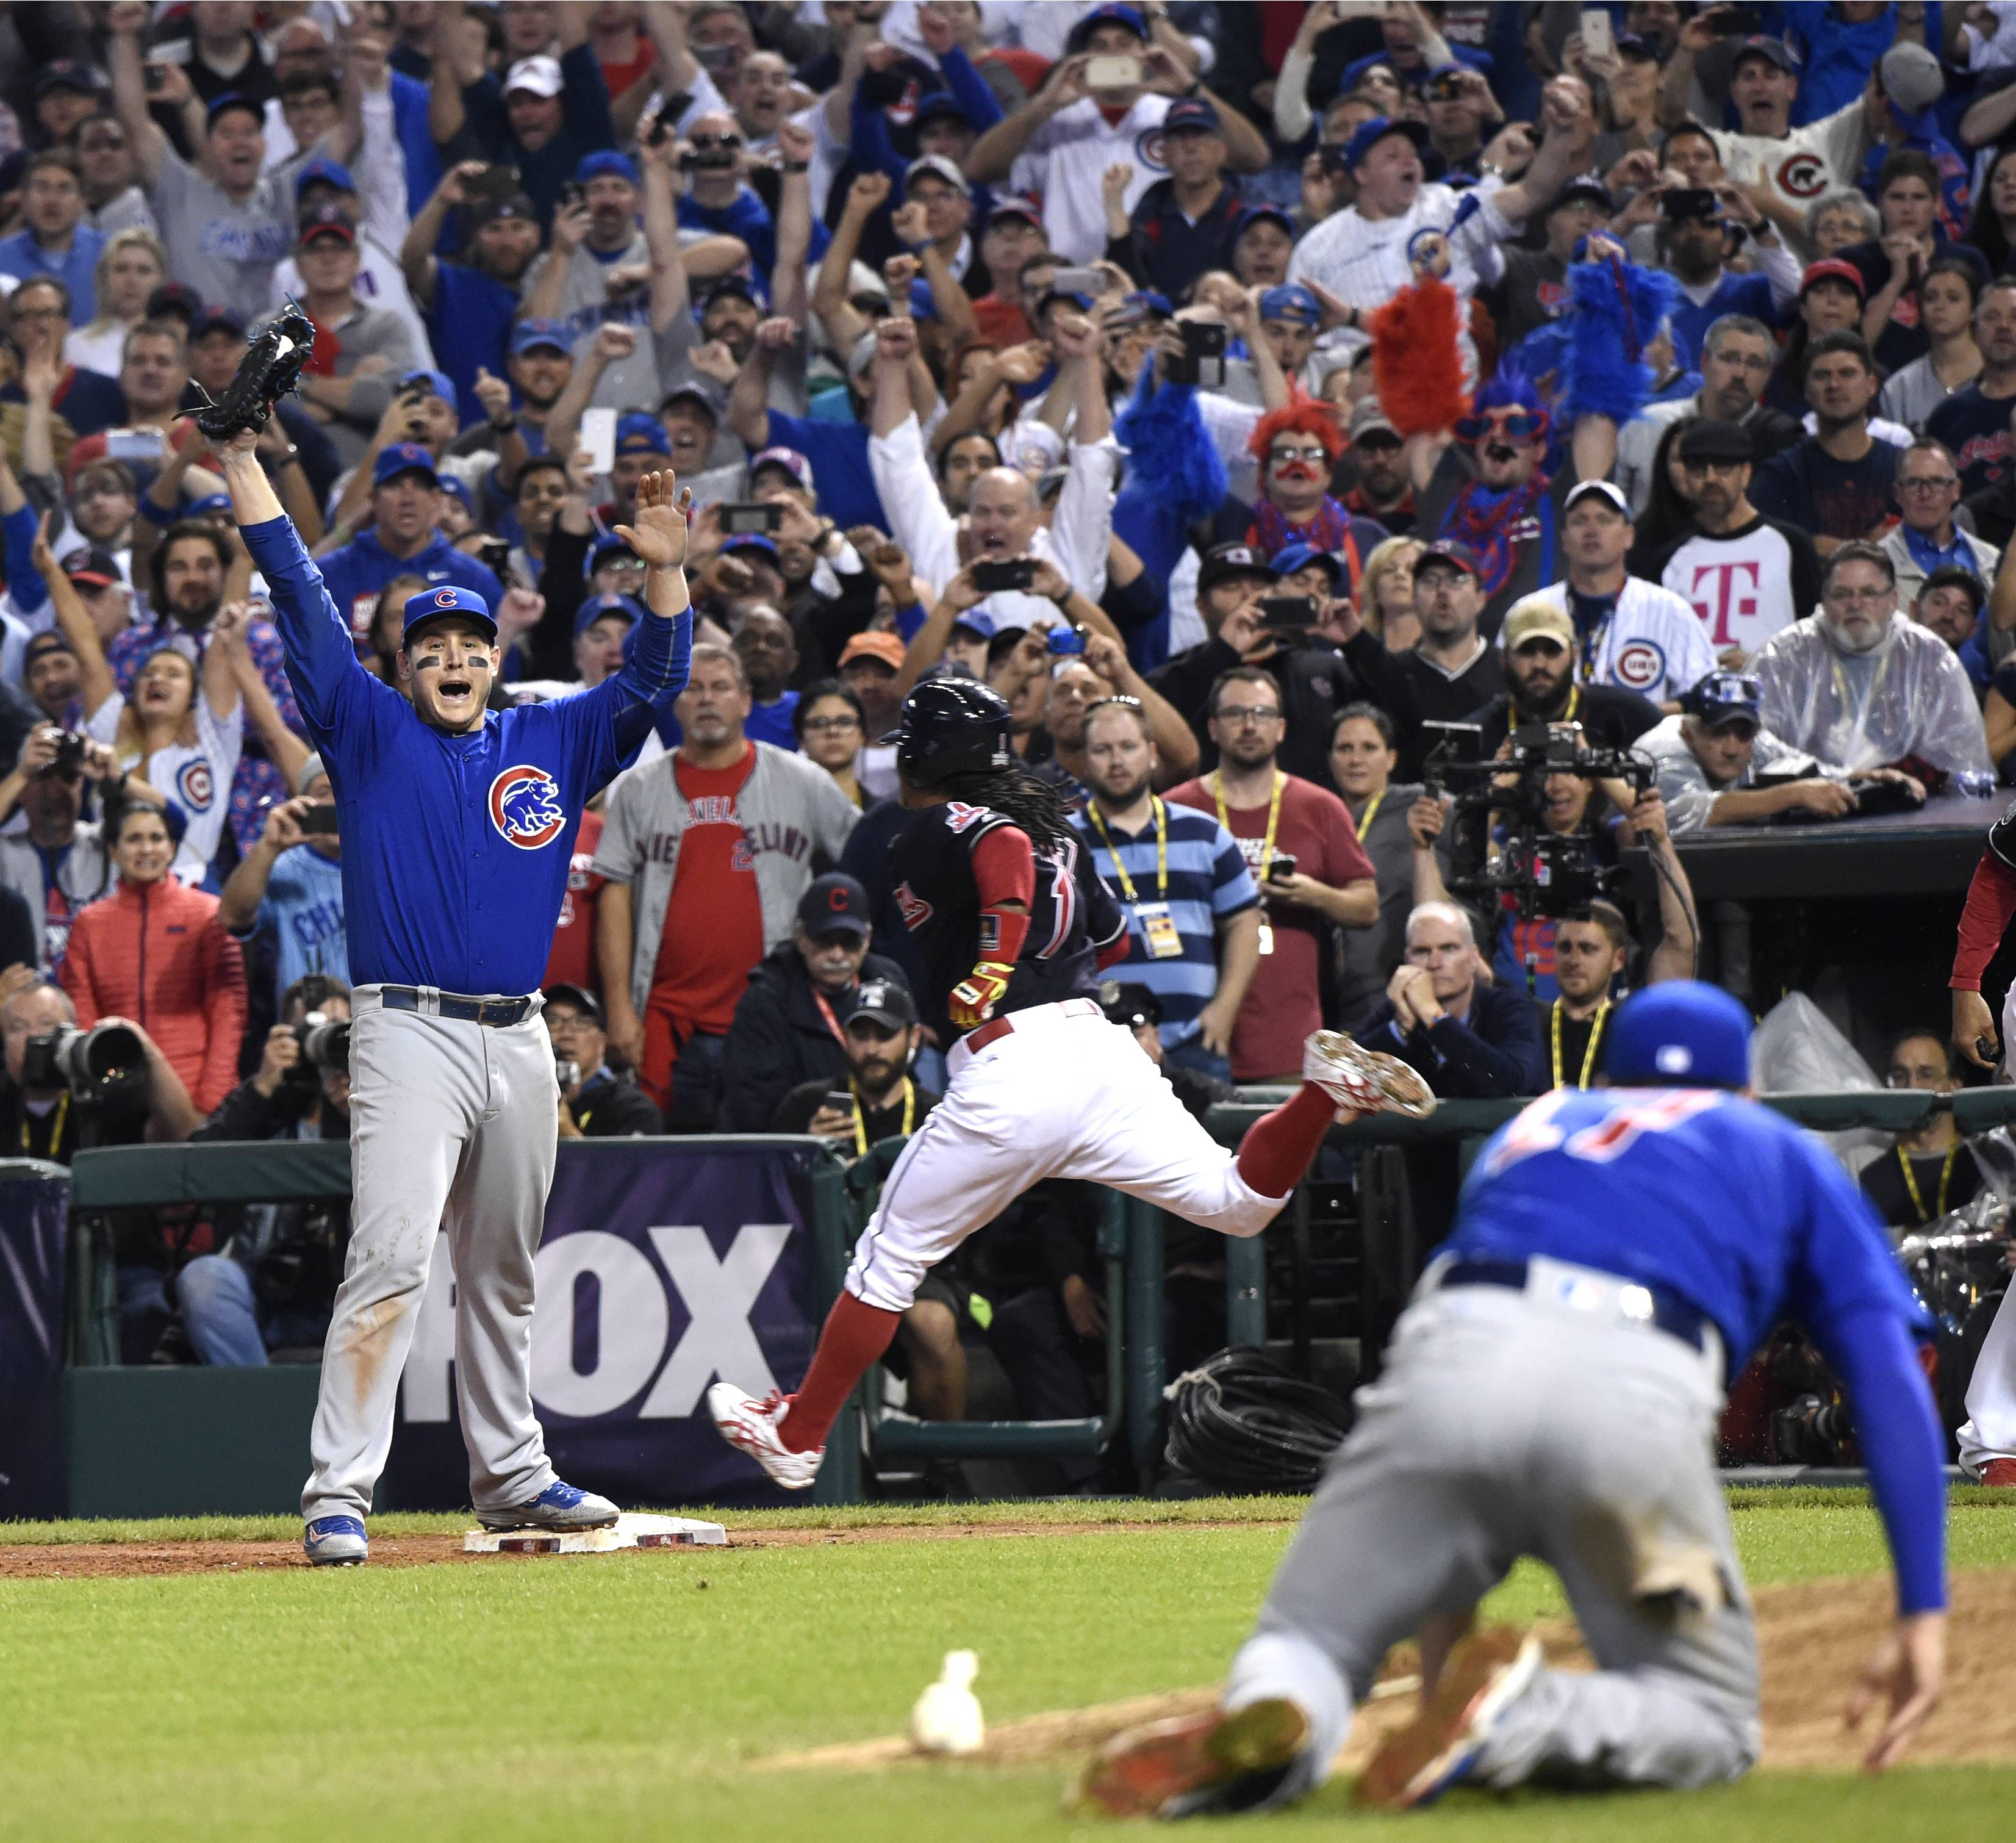 With Kris Bryant on the ground after making the throw, Anthony Rizzo catches the final out of Game 7 of the 2016 World Series and the Cubs begin their celebration at Progressive Field in Cleveland.